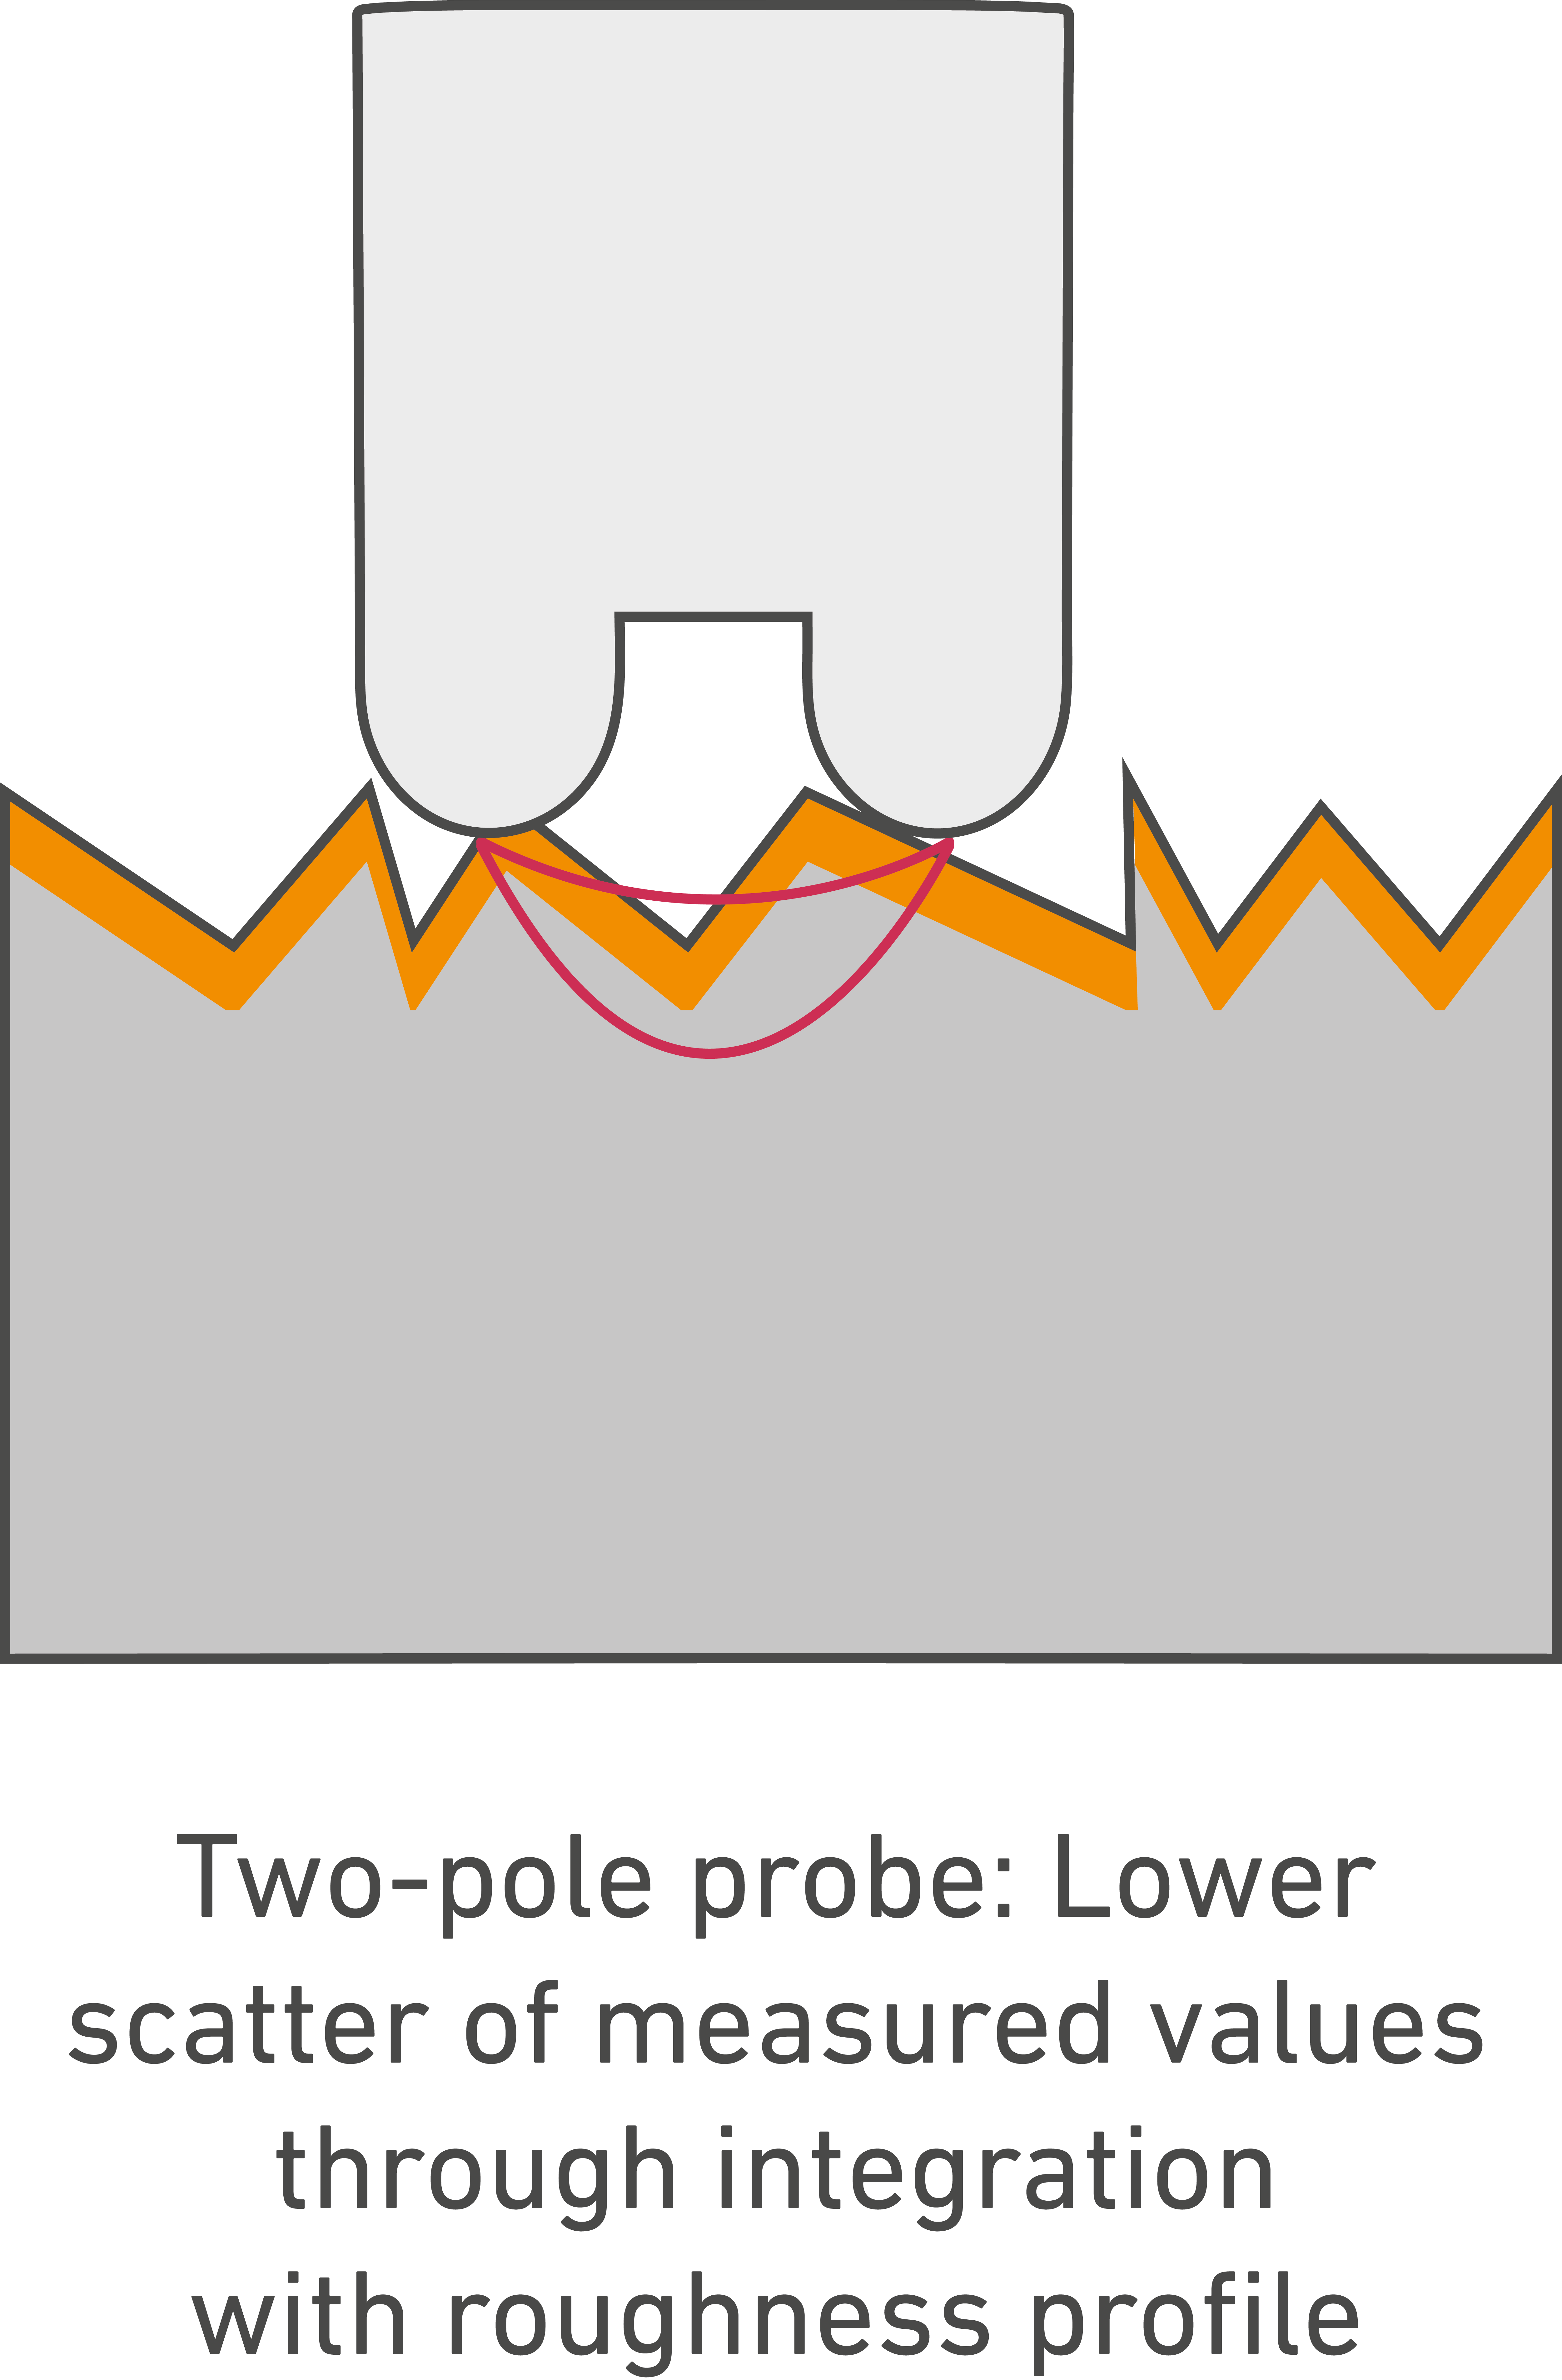 Layer thickness measurement on rough surfaces with a dual-poled probe